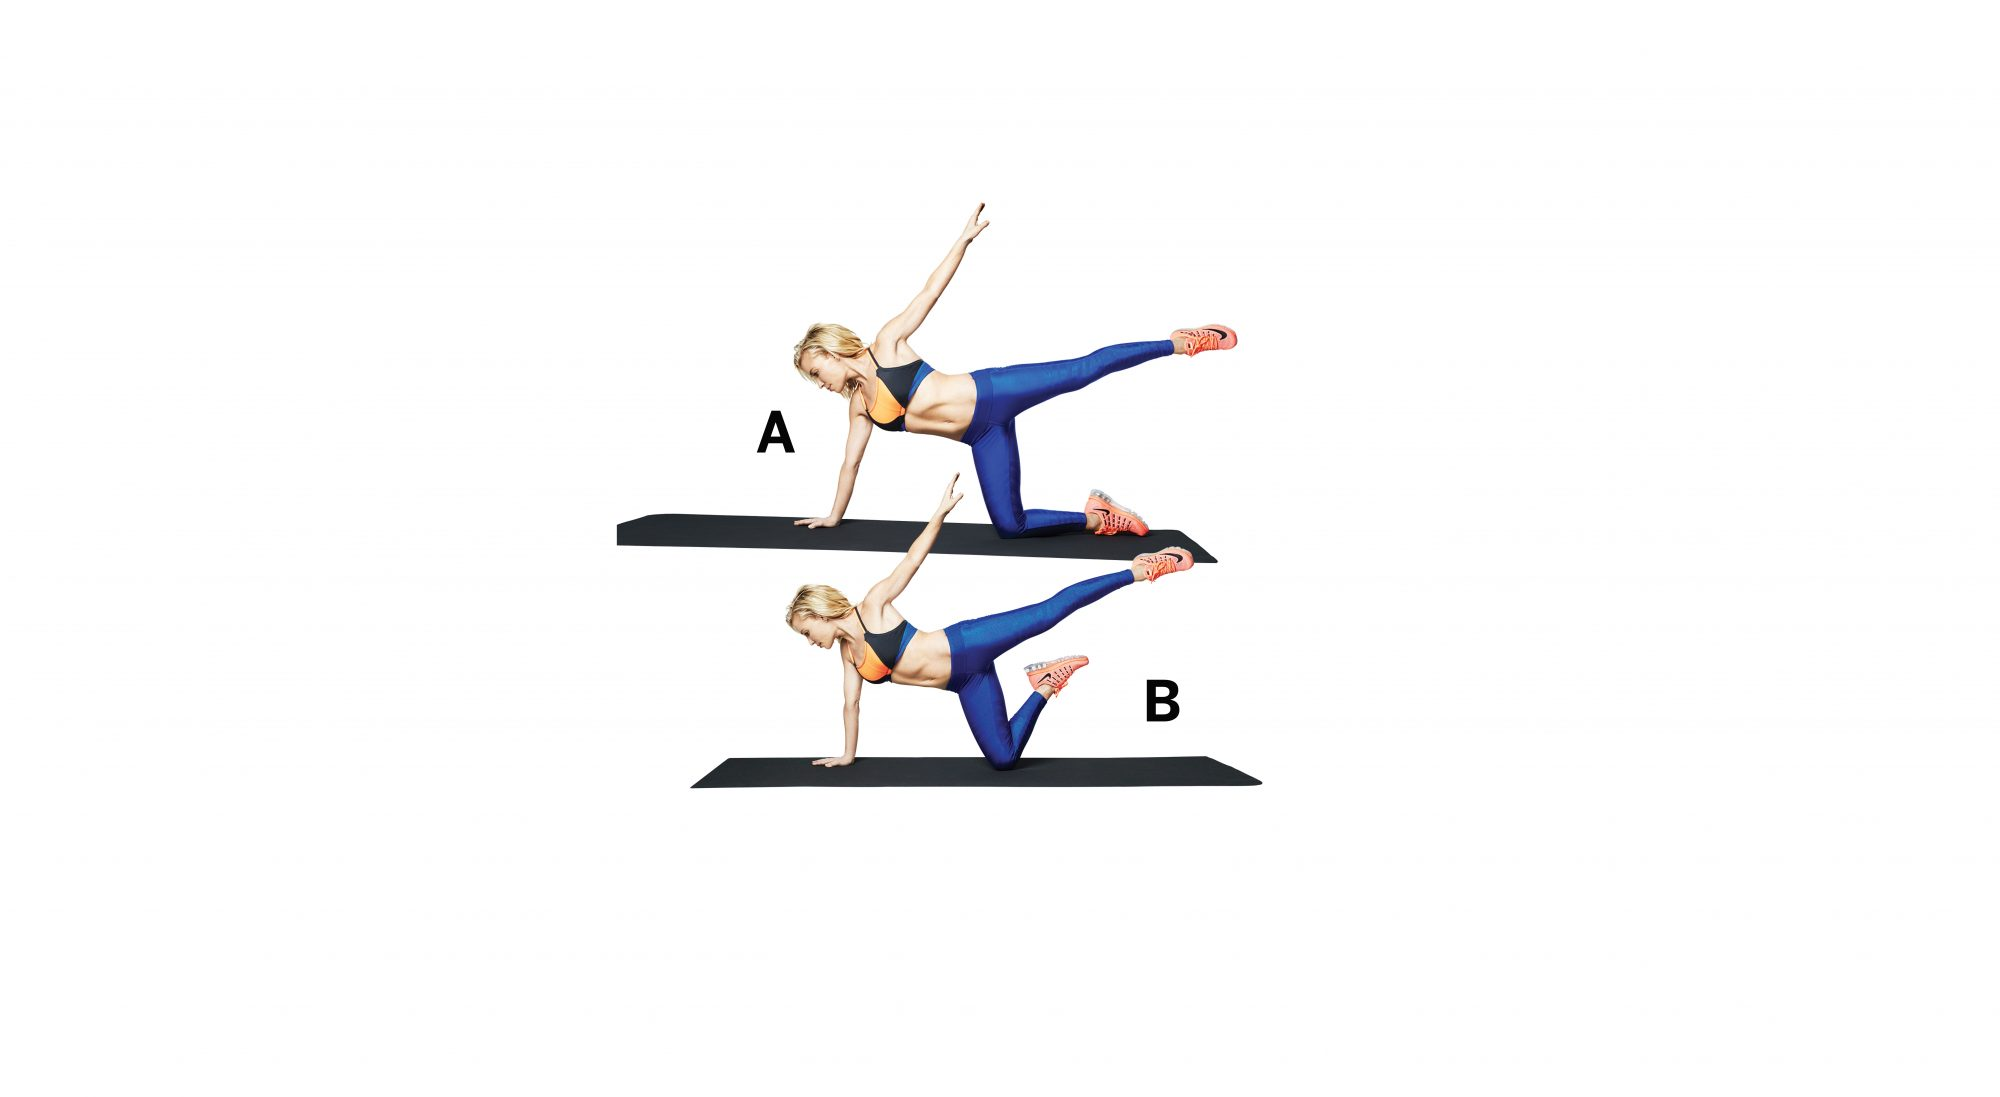 arabesque-lift-knee-balance-anderson